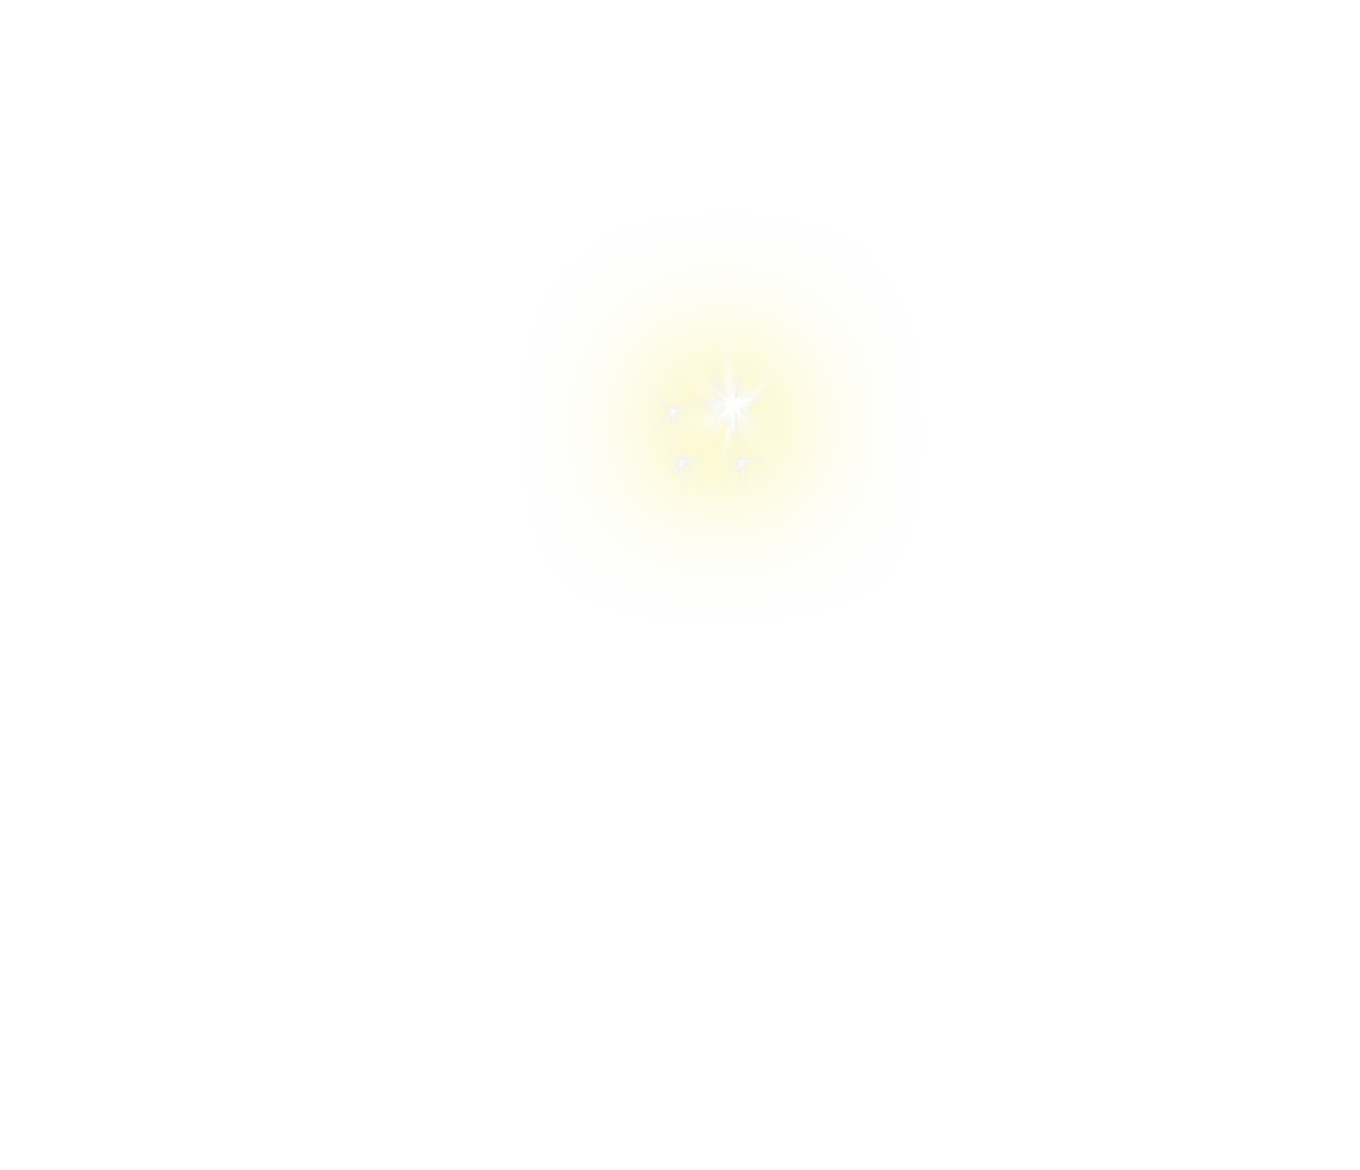 White sparkle png. Yellow